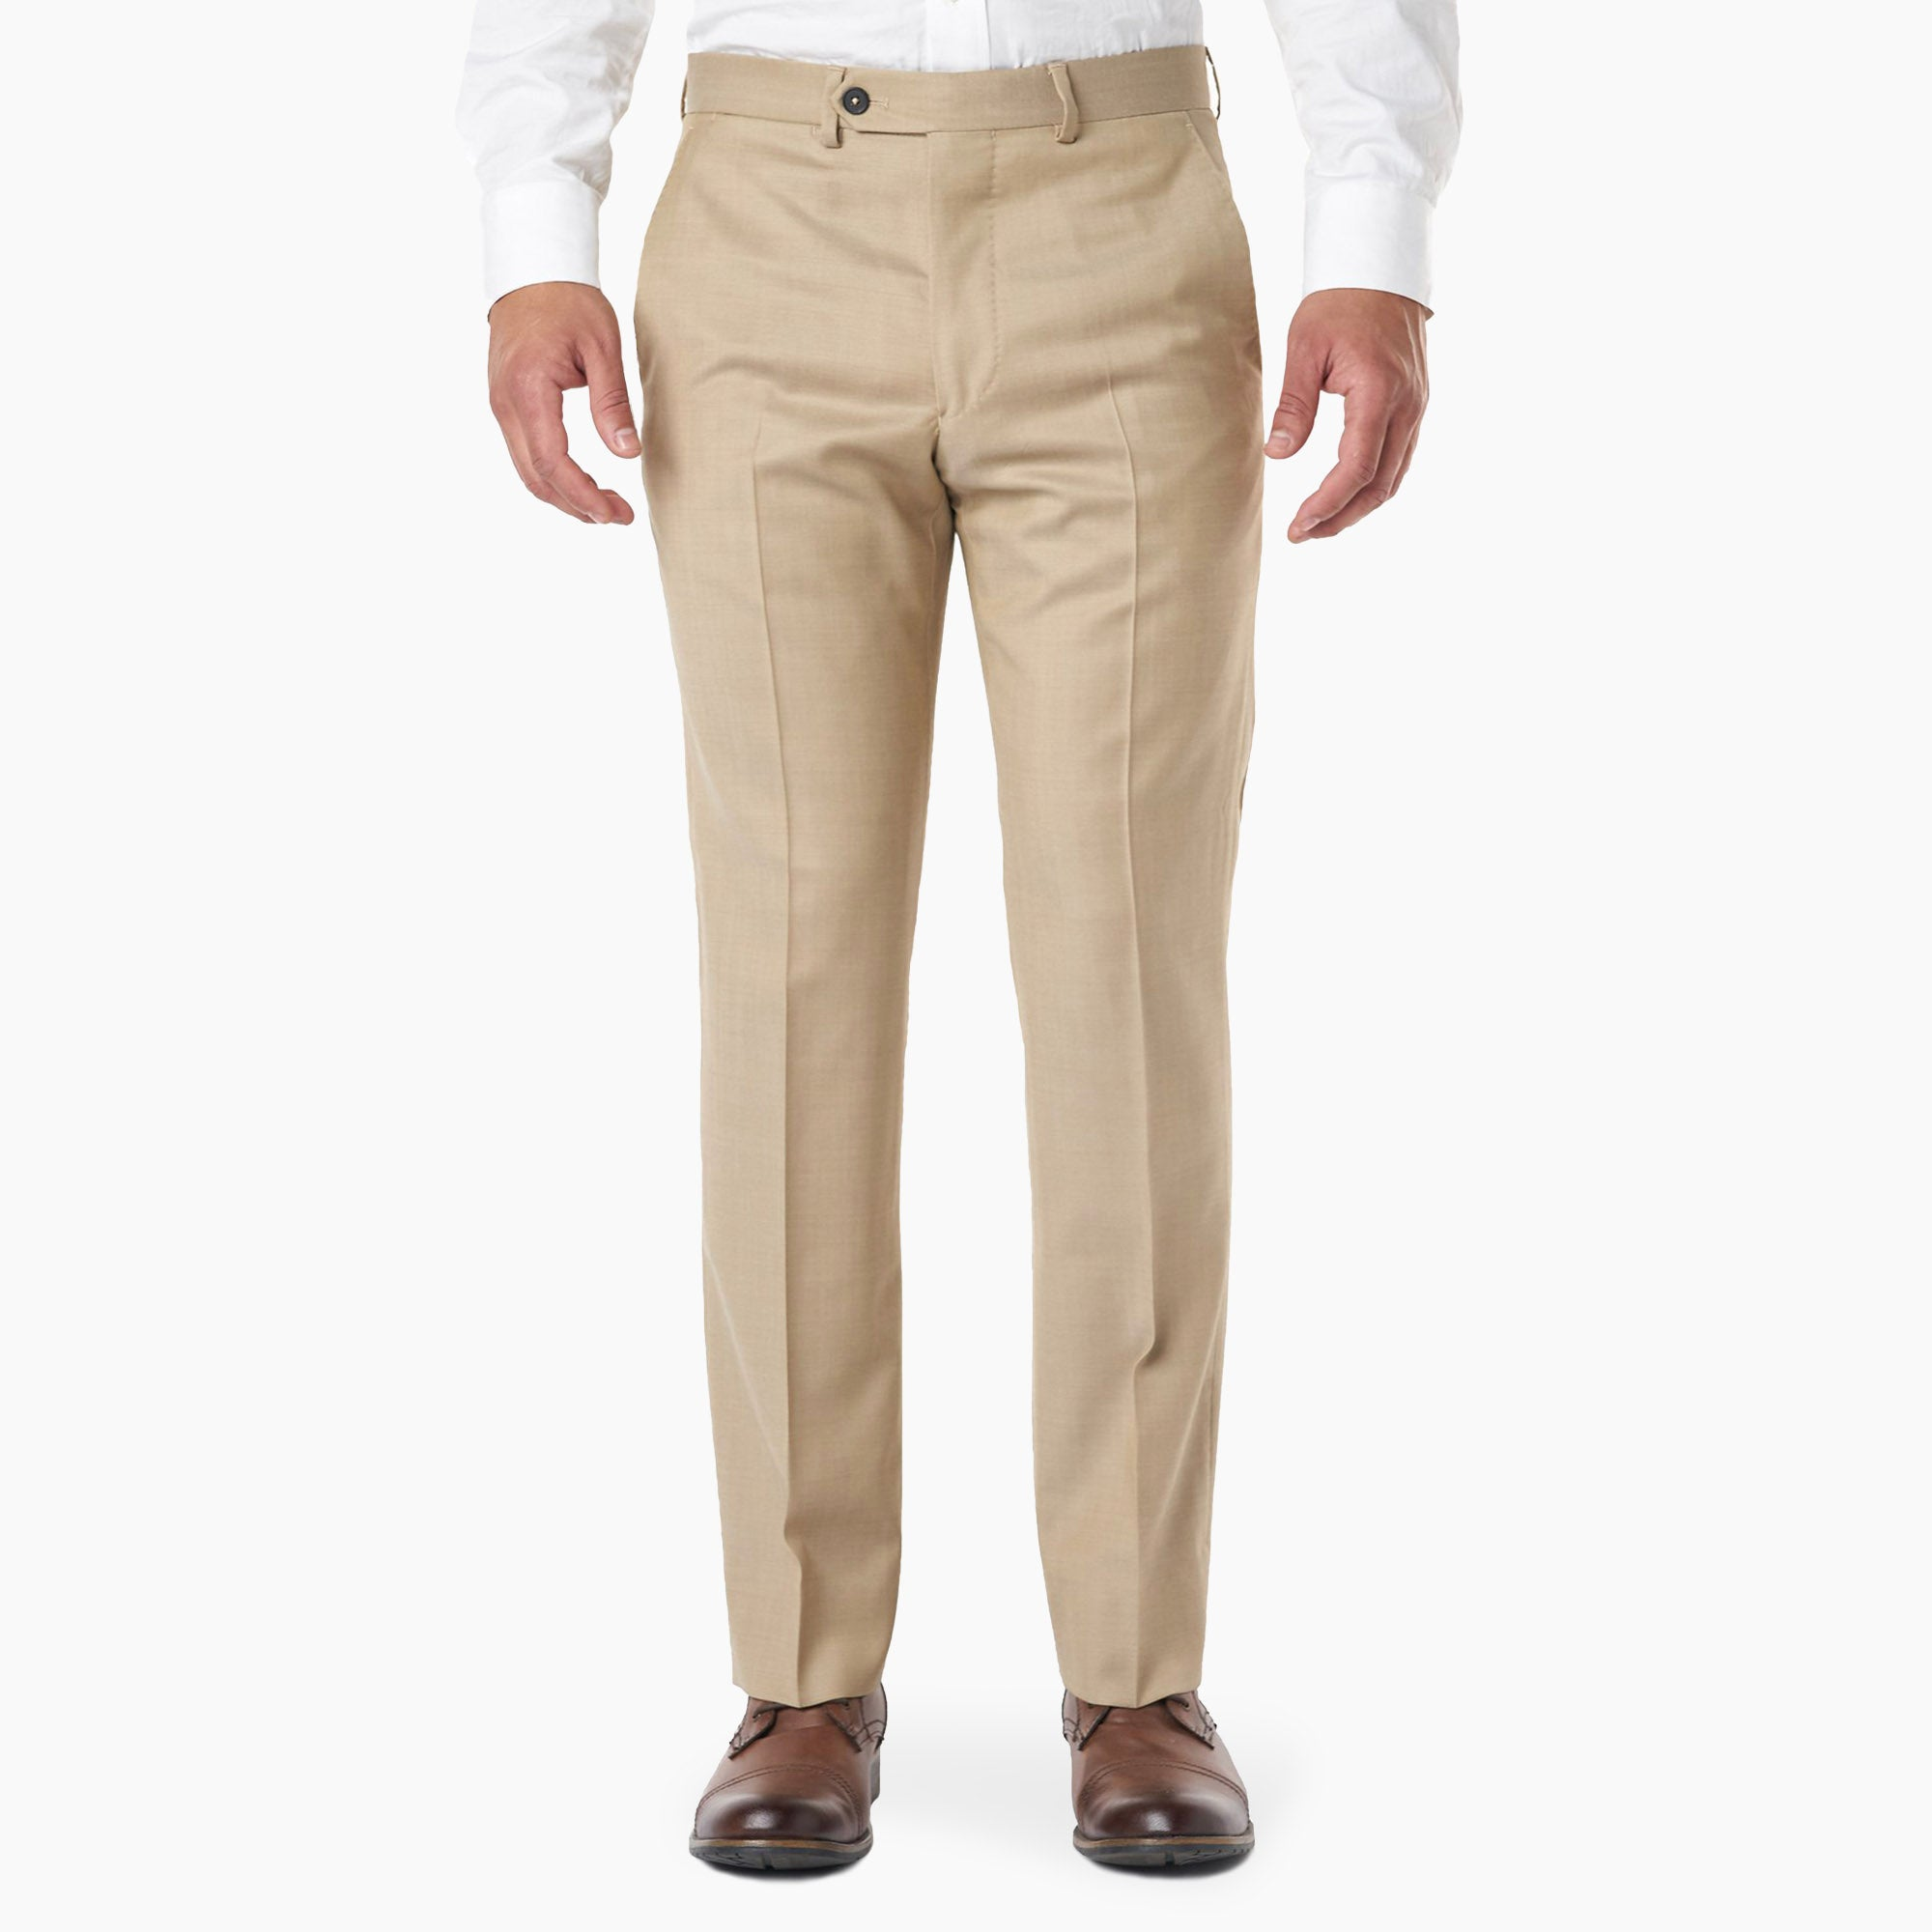 Essex Dress Pants - Khaki